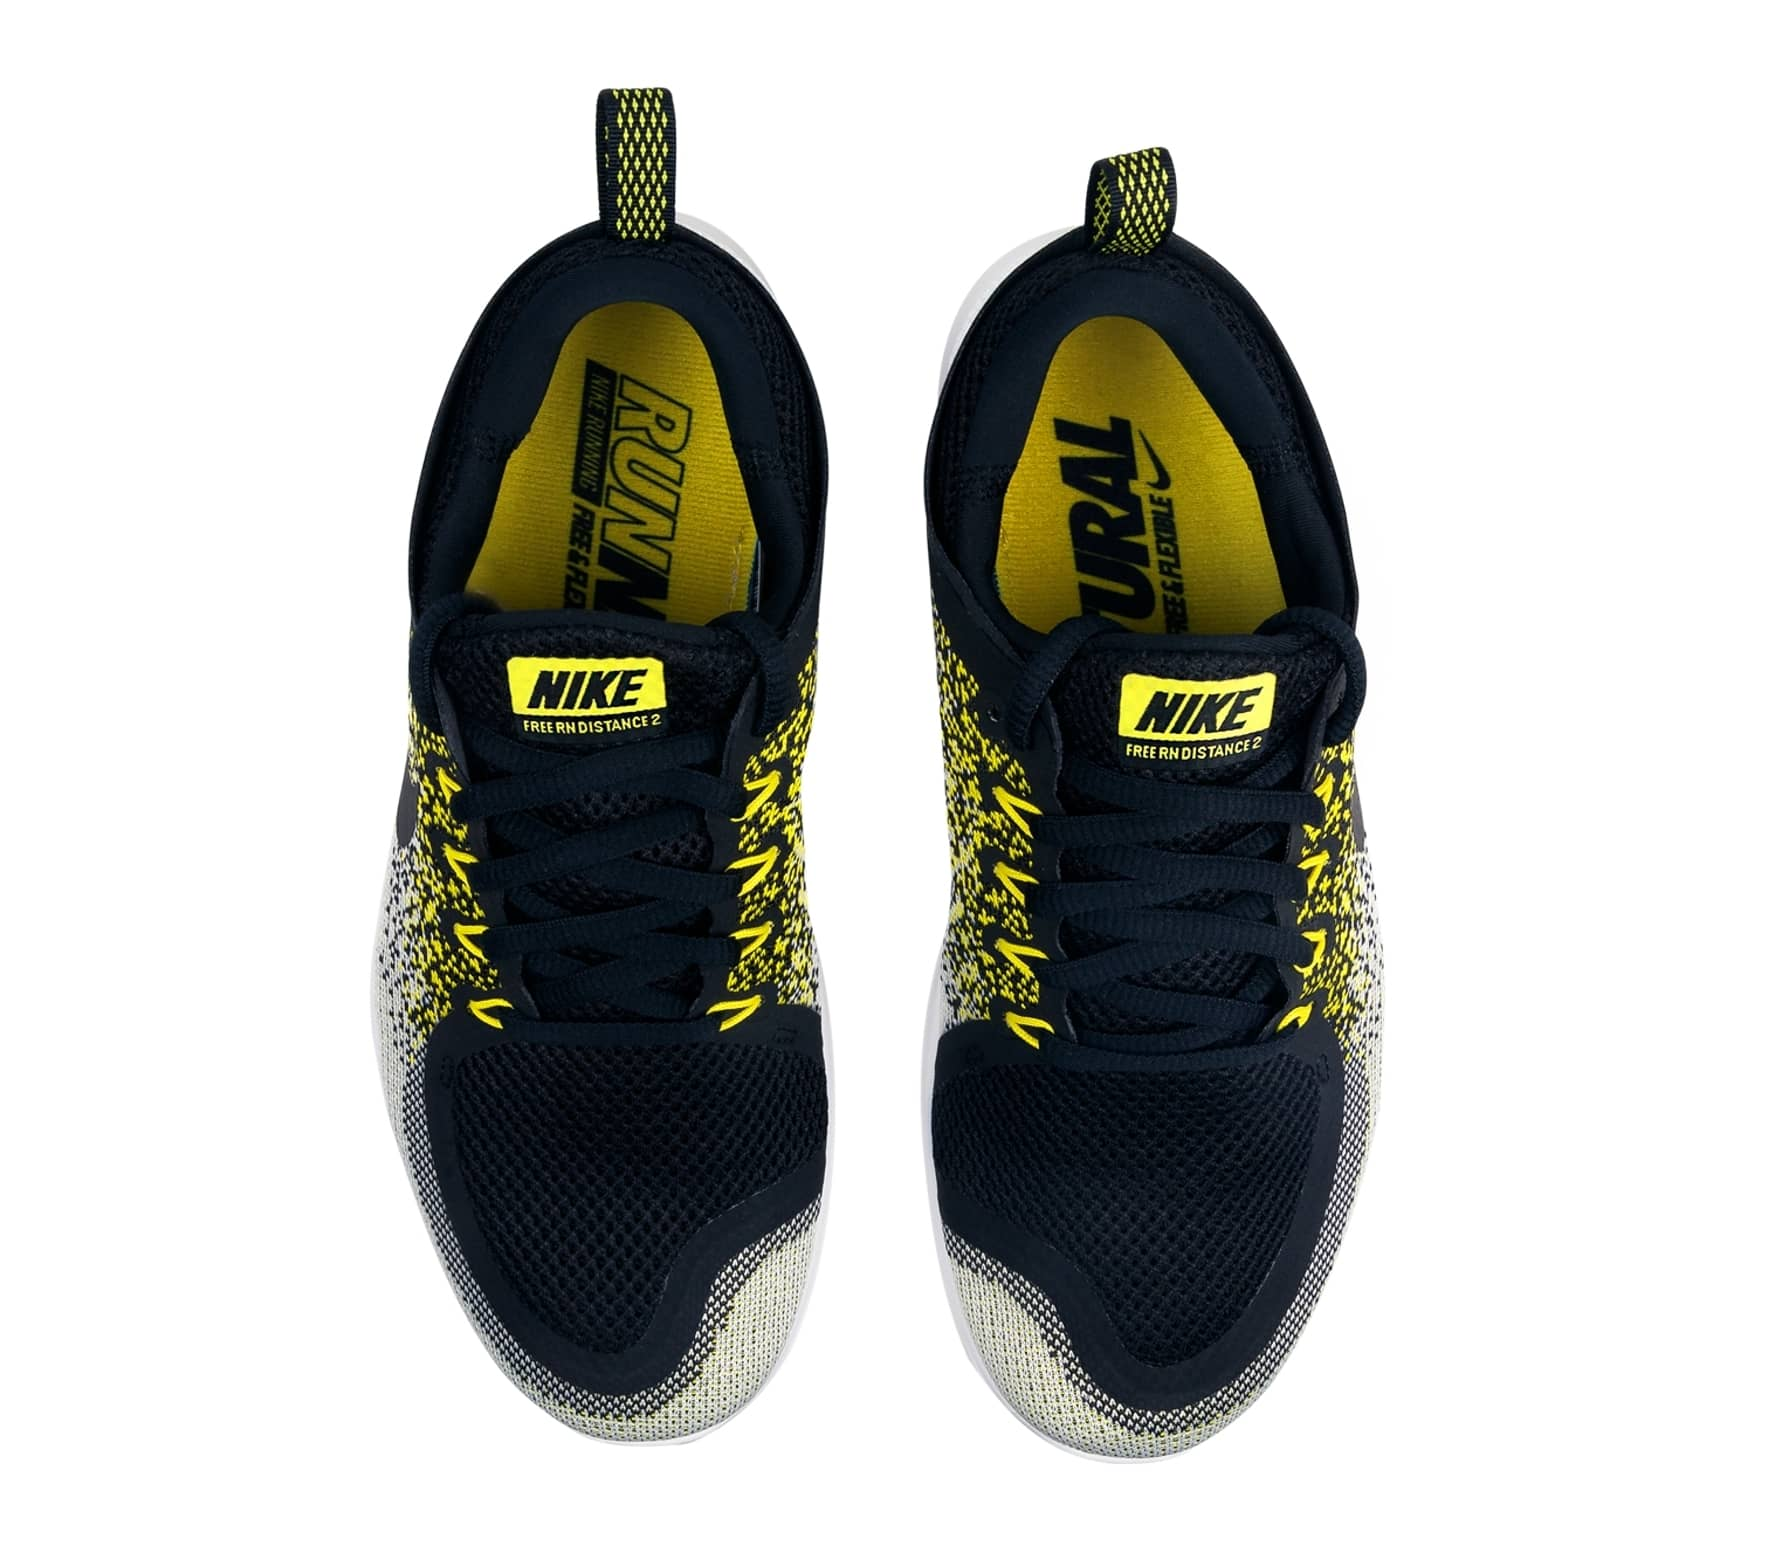 919a3ecb8ab1e Nike - Free RN Distance 2 BSTN women s running shoes (black yellow ...